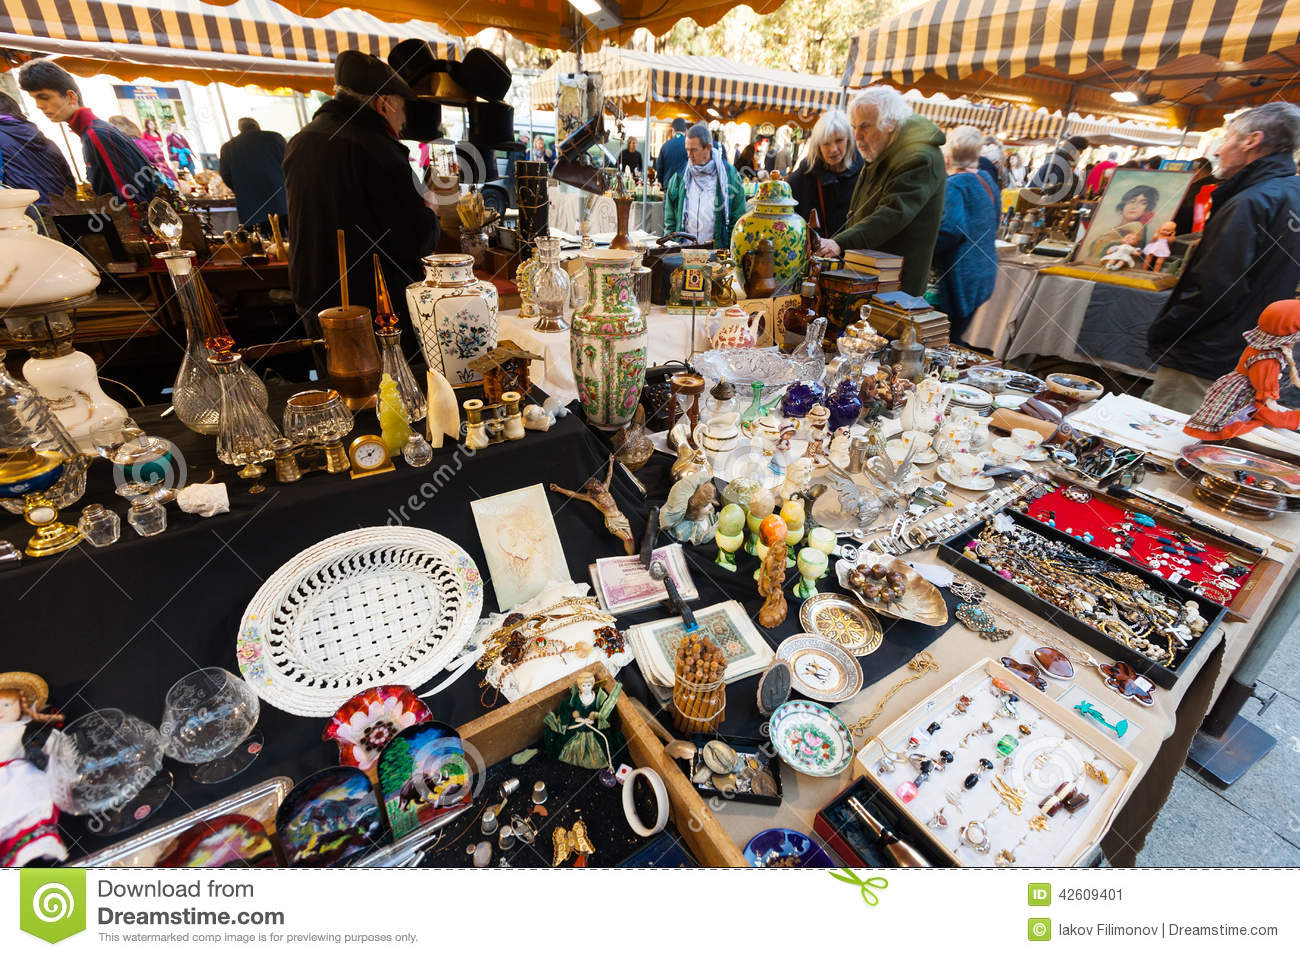 Discussion on this topic: Flea Market Shopping Secrets, flea-market-shopping-secrets/